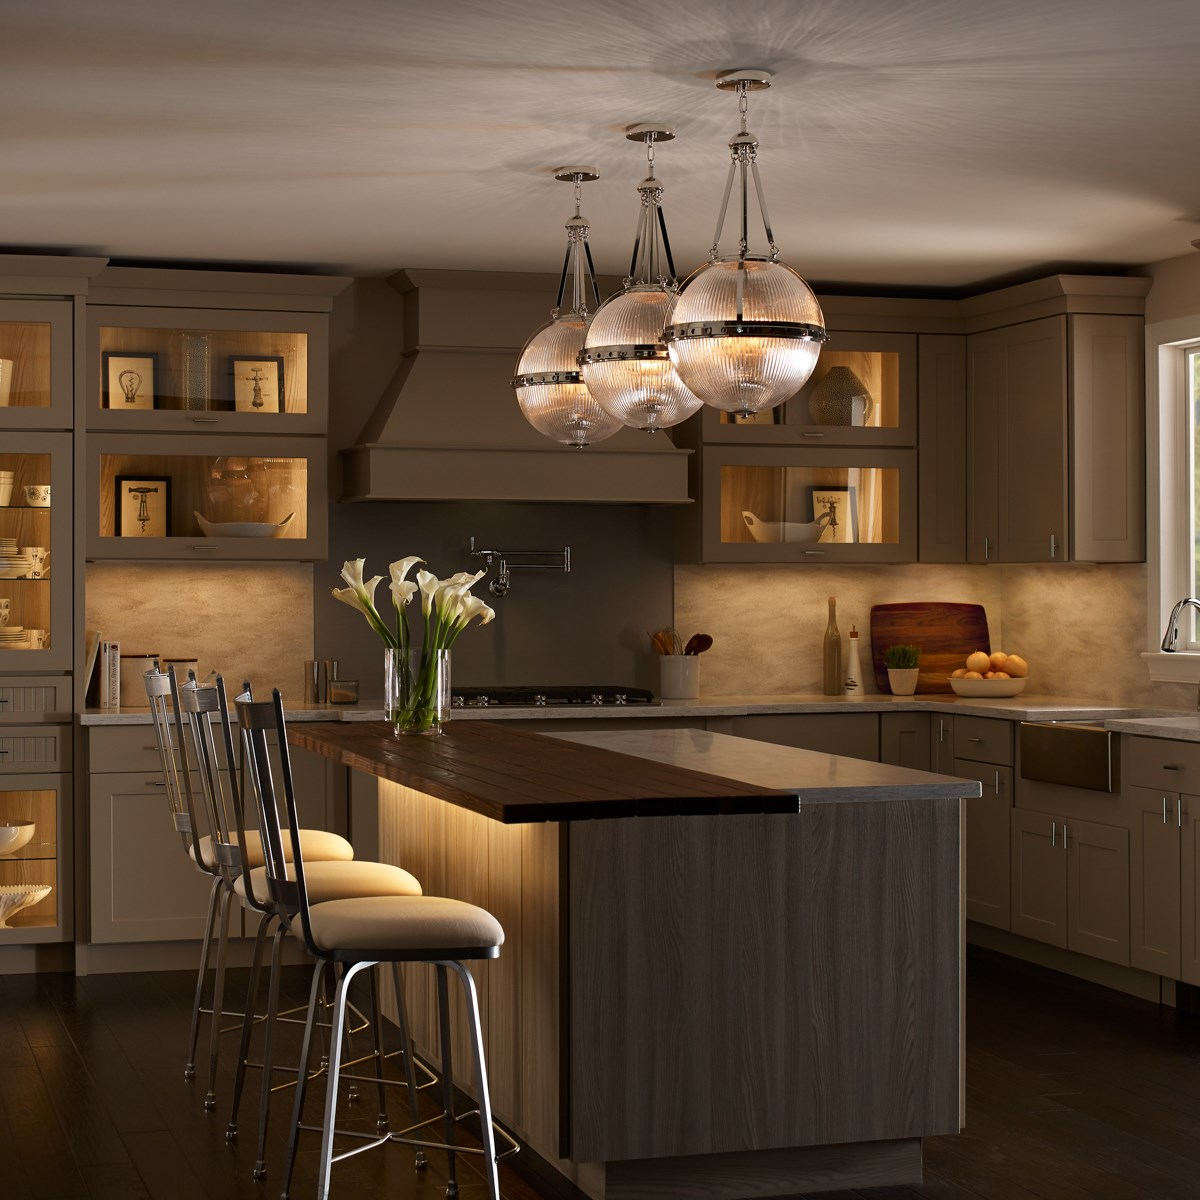 Aster 3 Light Pendant In Polished Nickel™